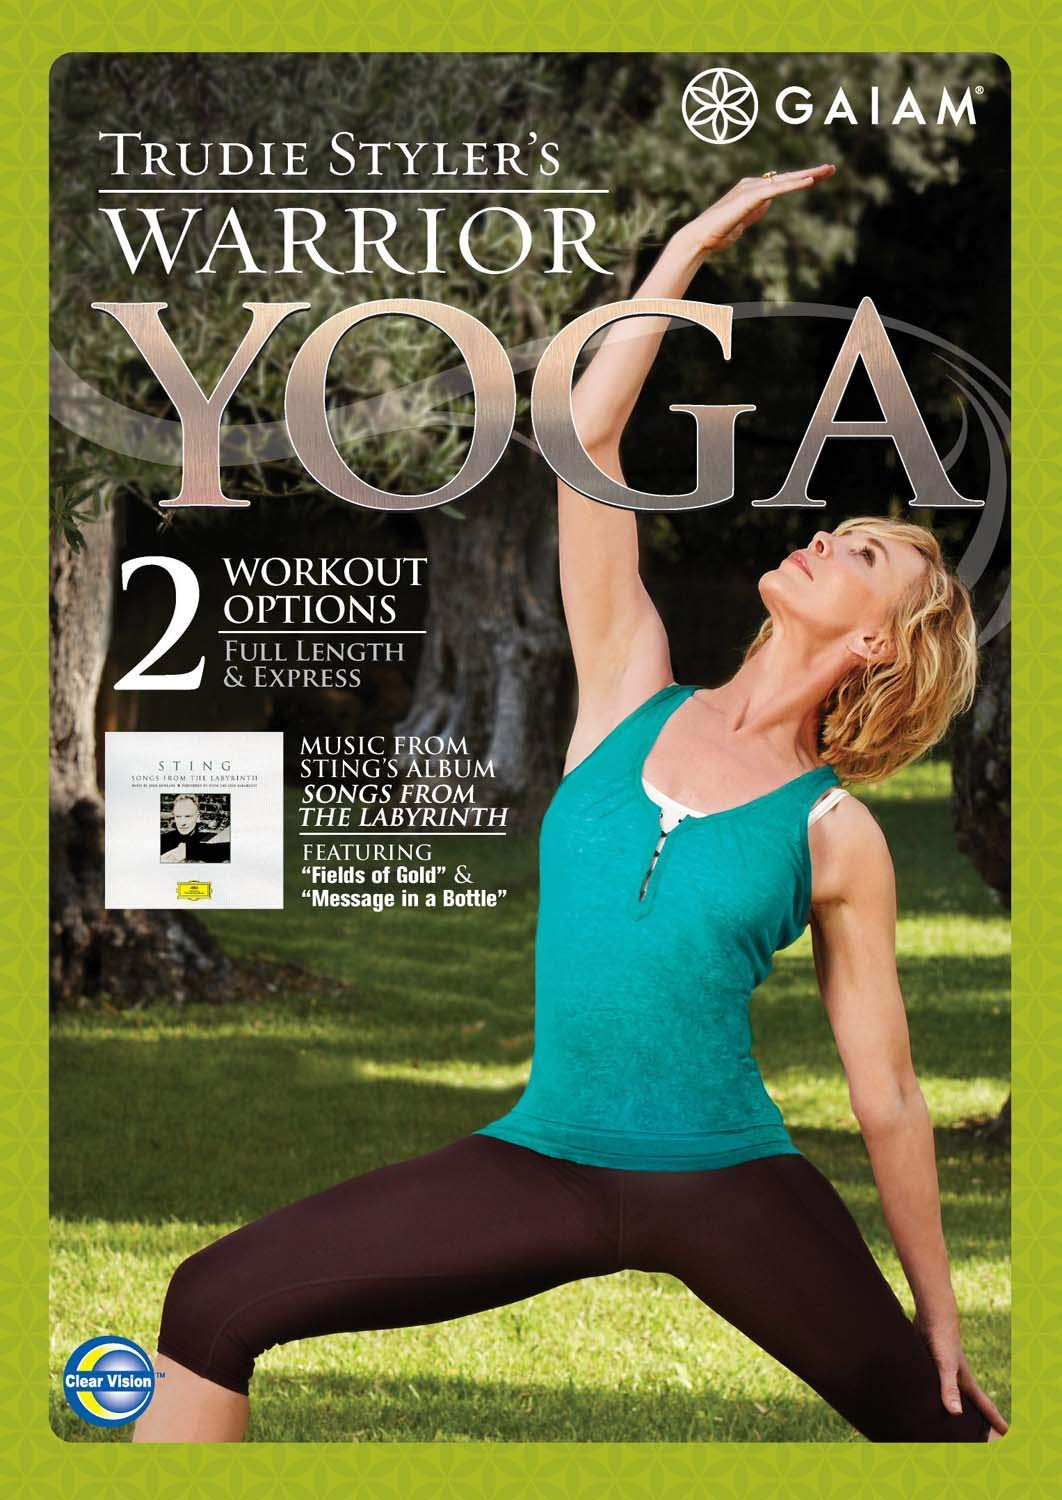 Amazon.com: Trudie Stylers Warrior Yoga [DVD] (2009 ...